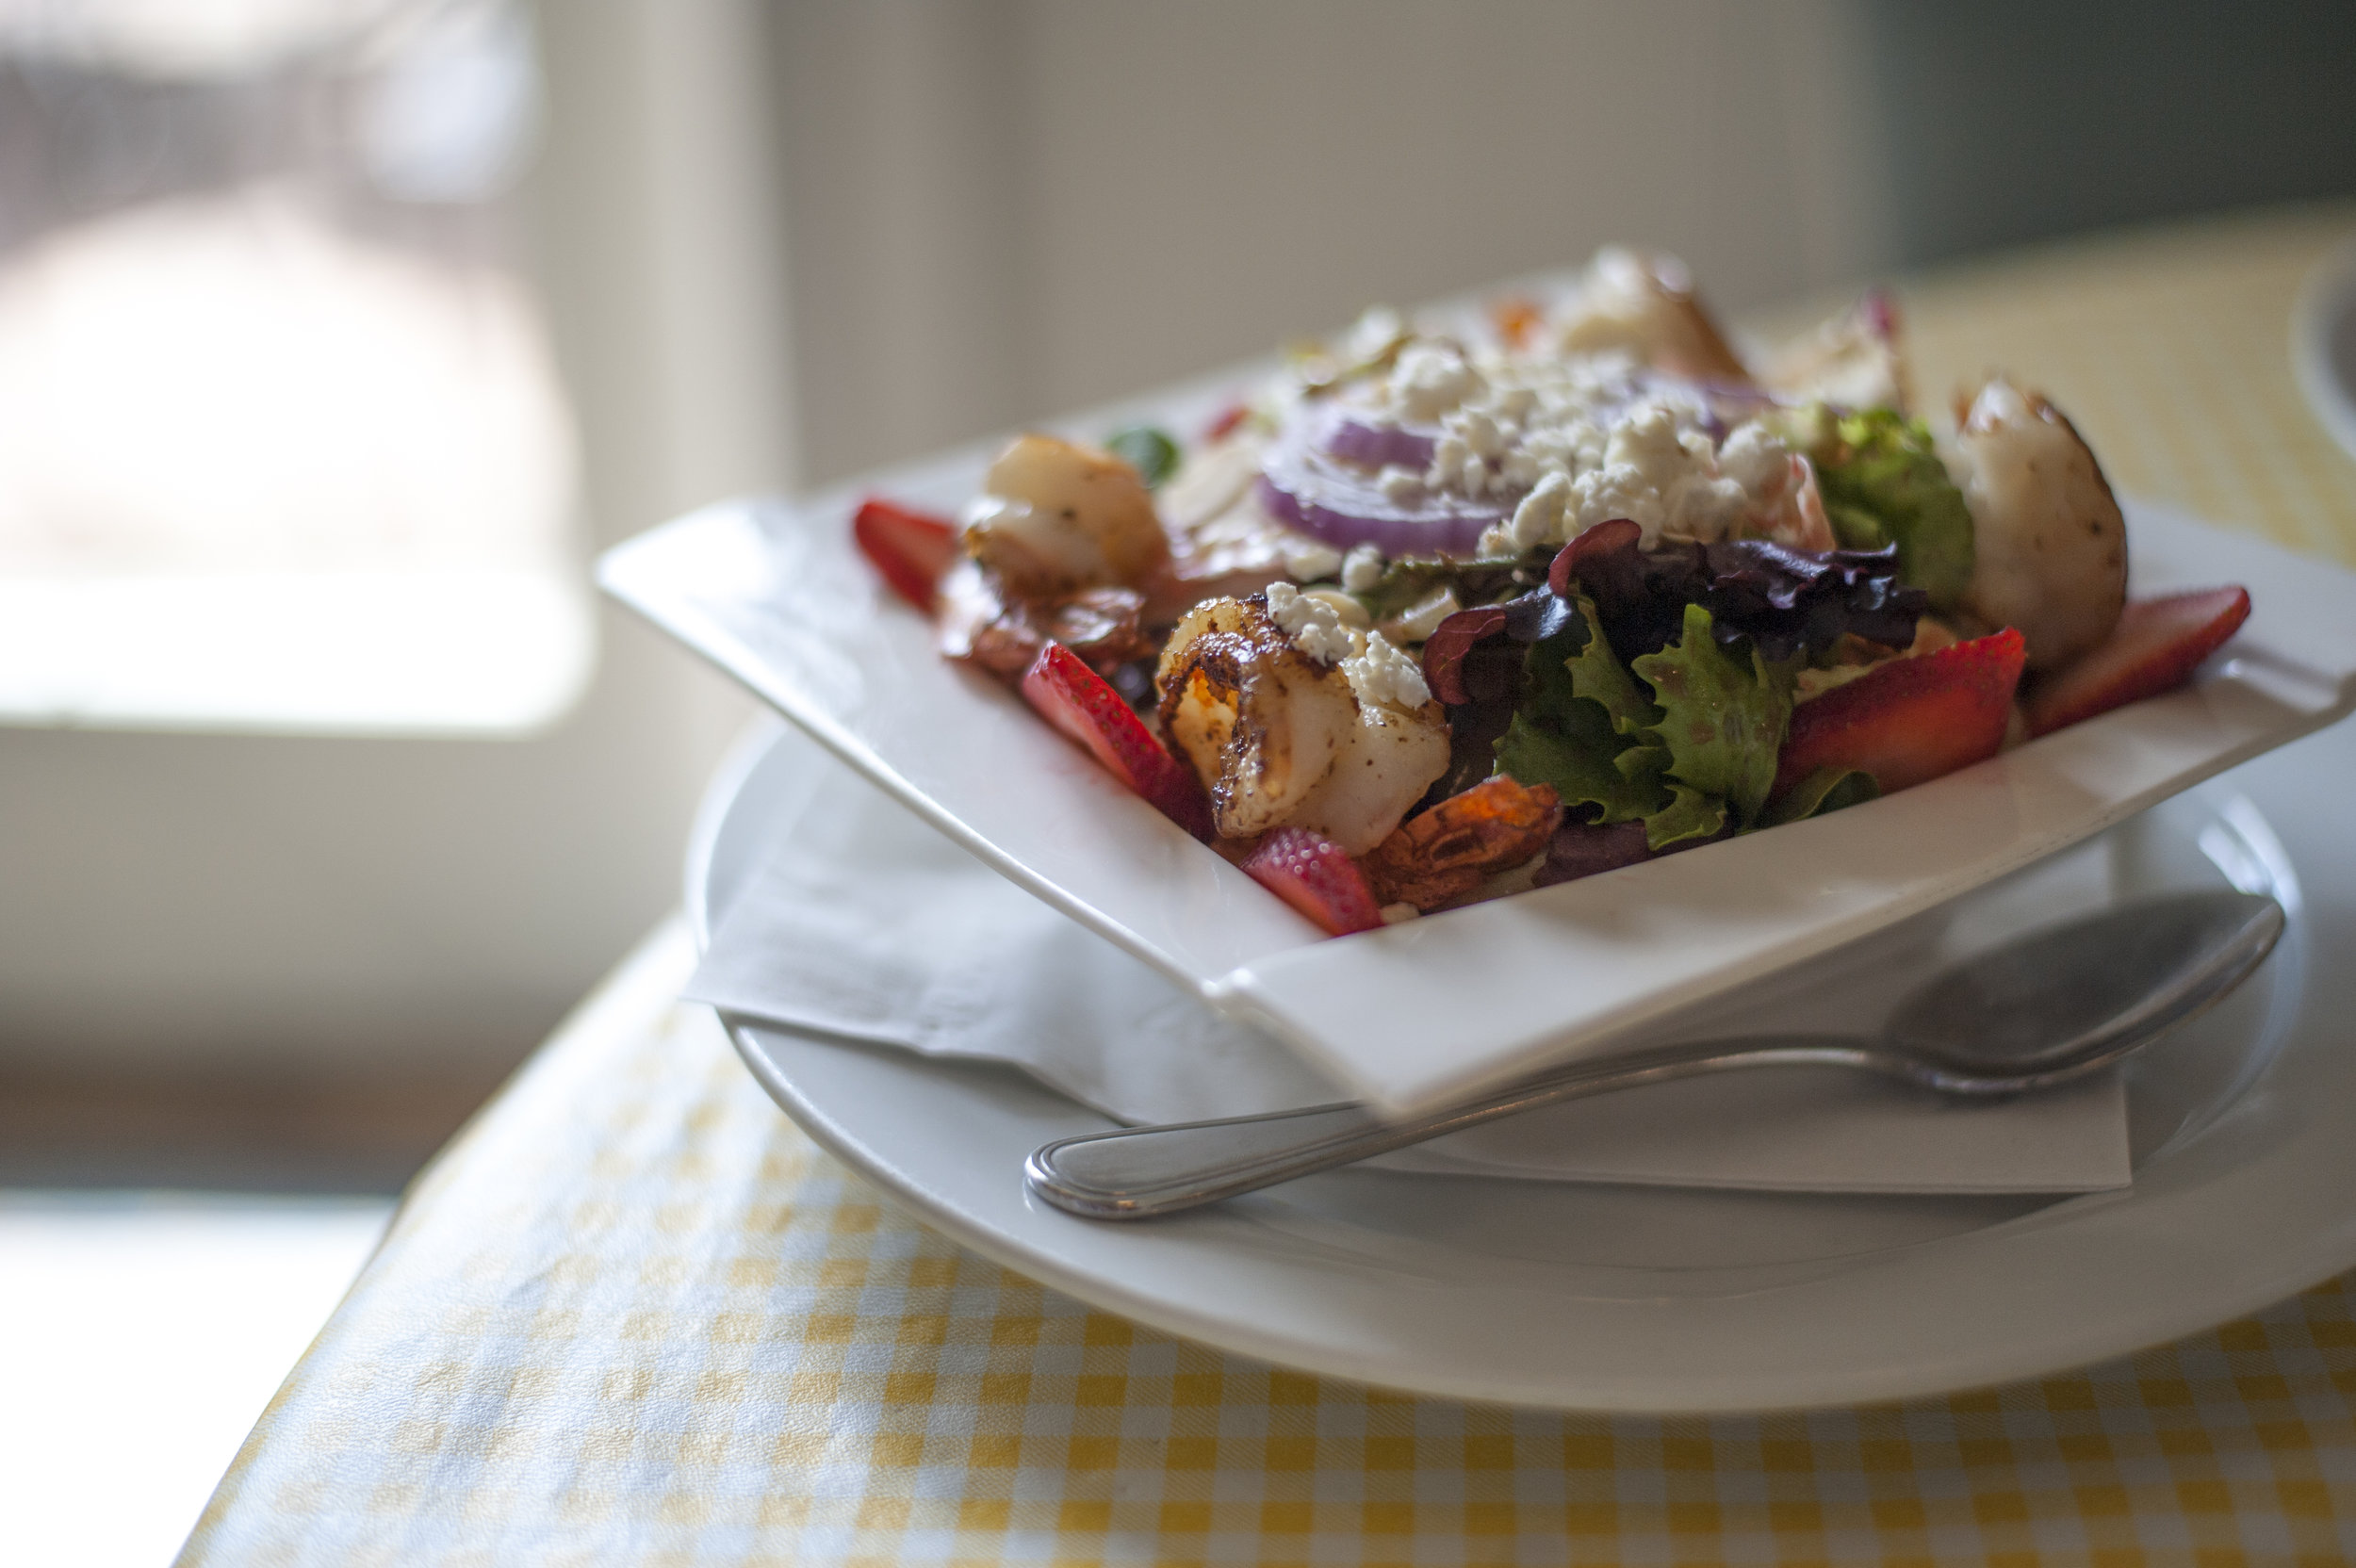 The Summer Strawberry & Shrimp Salad tosses together char-grilled shrimp over mixed greens, freshly sliced strawberries, goat cheese, sliced almonds and red onion with a raspberry vinaigrette.